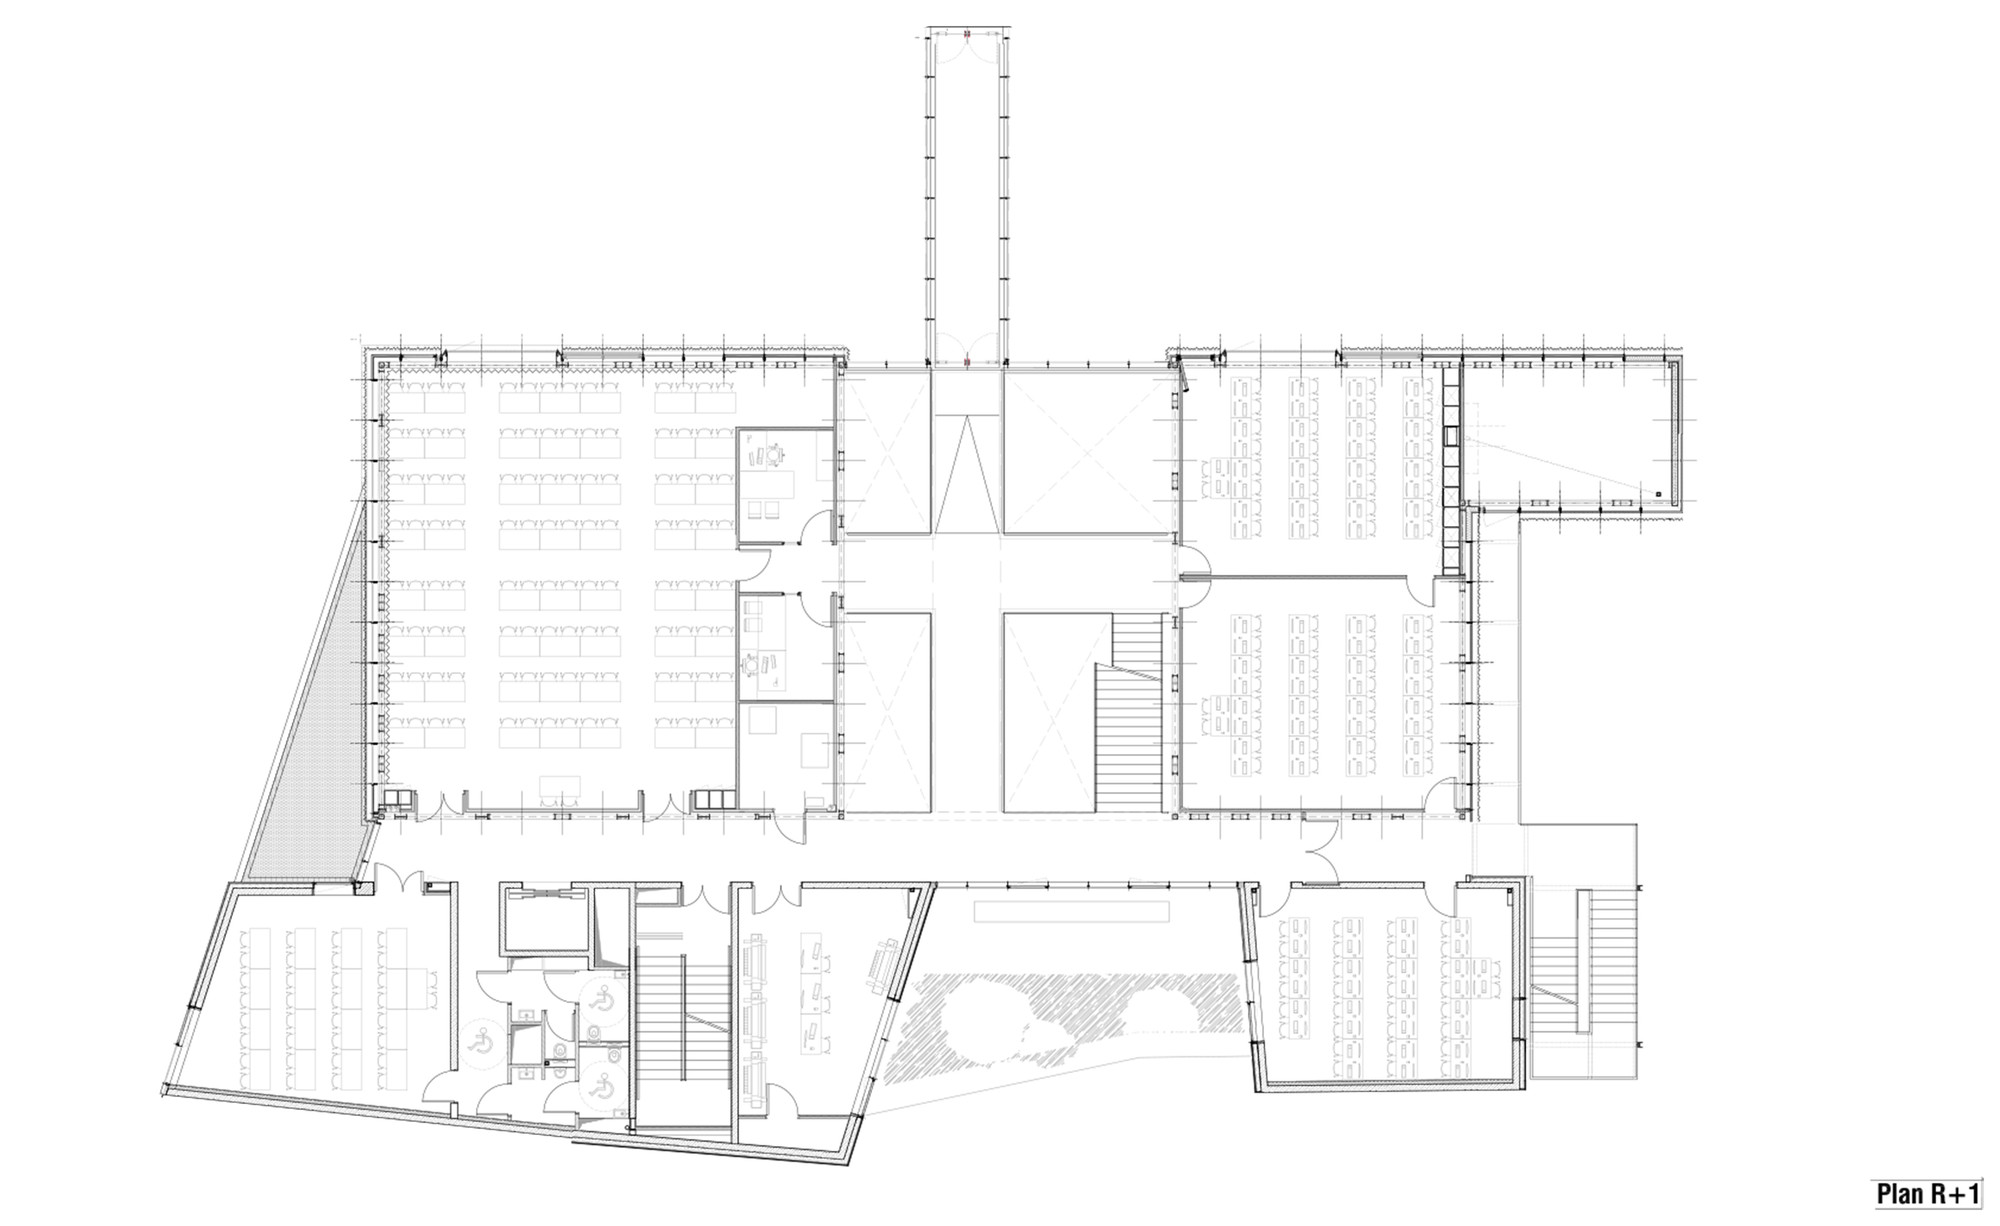 gallery d with 534c926dc07a80056100013f Strasbourg School Of Architecture Marc Mimram First Floor Plan on Antelope Coloring 03 likewise 534f593ac07a805d8a000073 Cube House Nomena Plans further 501388a928ba0d1507000725 Guangzhou Opera House Zaha Hadid Architects Section likewise 523 likewise 5012500c28ba0d0a48000376 Vivanta Hotel Wow Architects Warner Wong Design Plan.